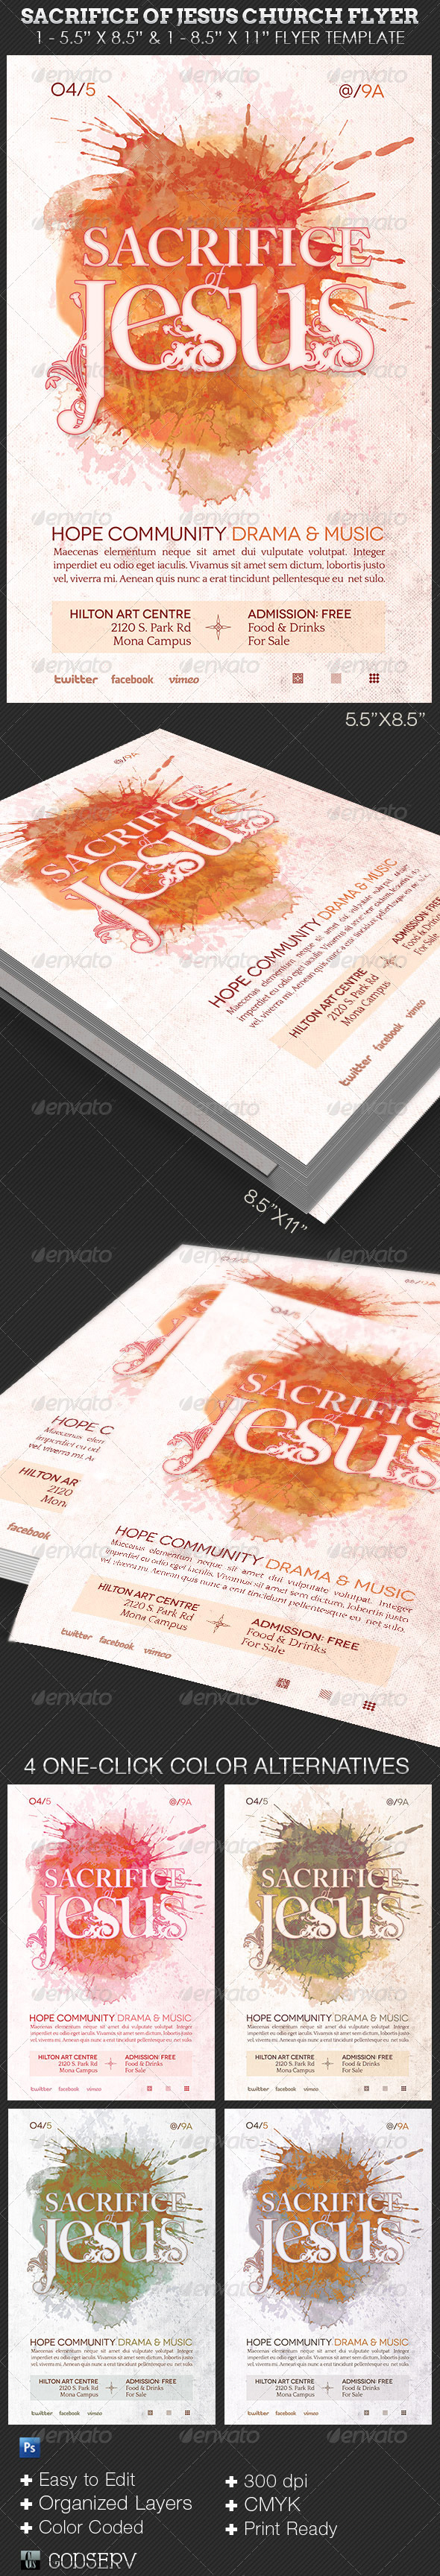 Sacrifice of Jesus Church Flyer Template - Church Flyers